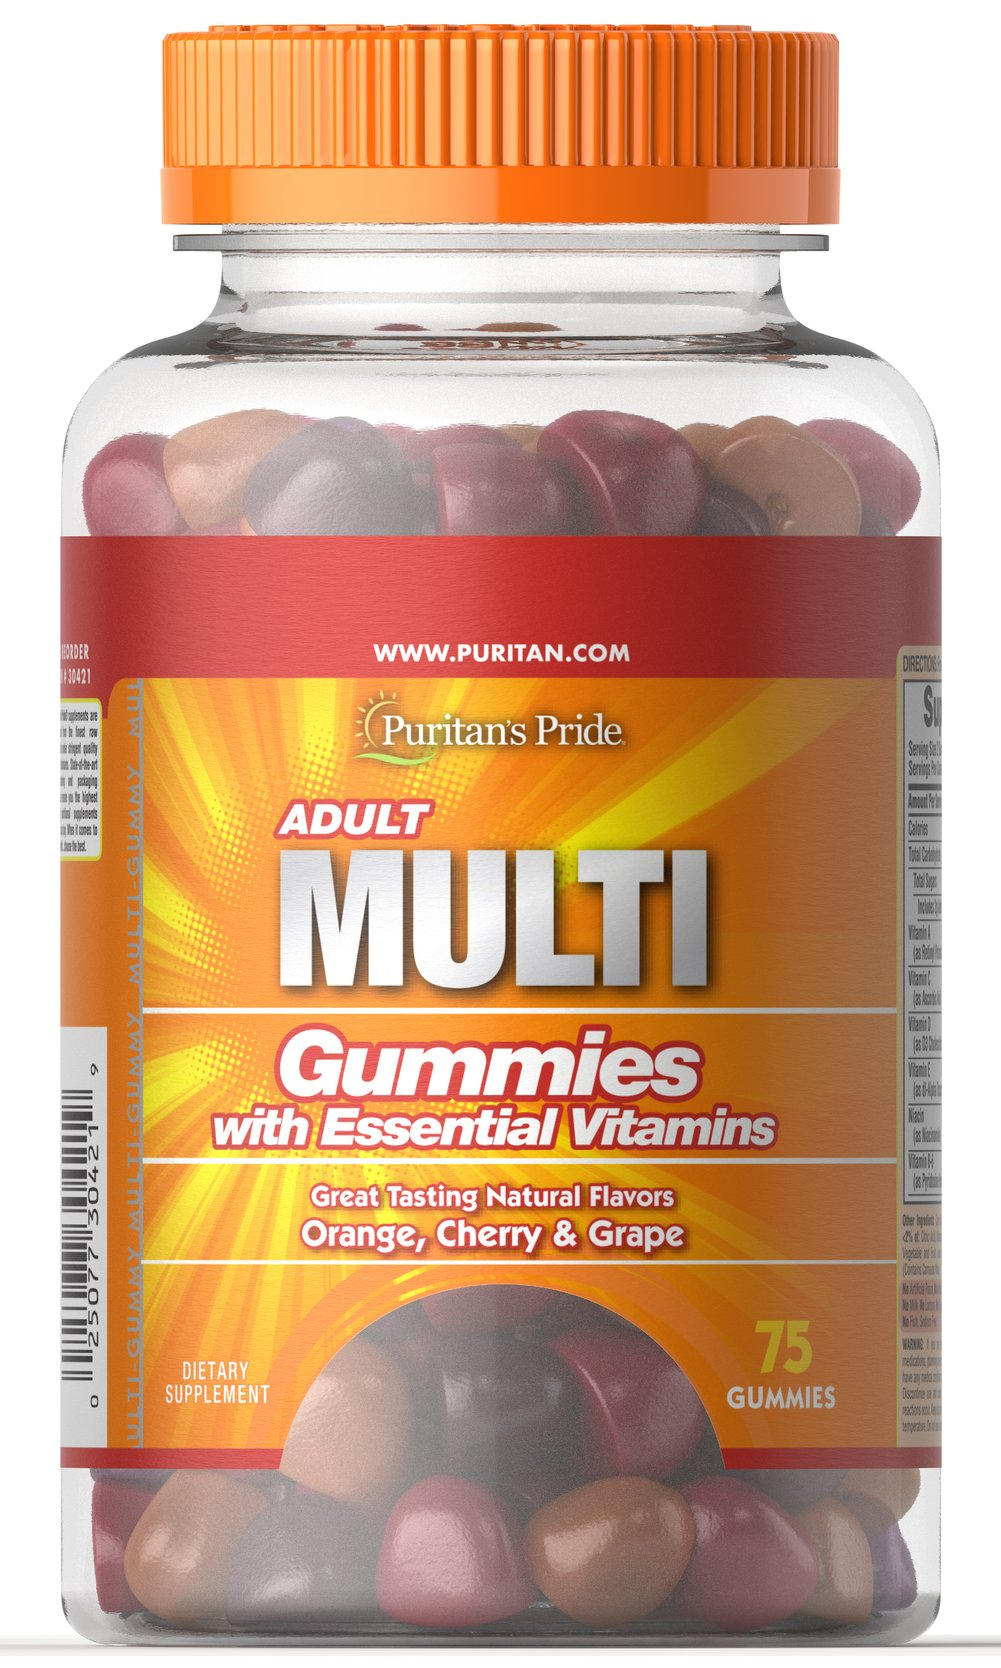 Adult Multivitamin Gummy <p>An adult multivitamin that's delicious and fun to take</p><p>Vitamin and mineral support for your heart, eyes, bones and joints**</p><p>Great-tasting natural flavors include orange, cherry and grape</p><p>No artificial flavors. <br /></p> 75 Gummies  $20.59